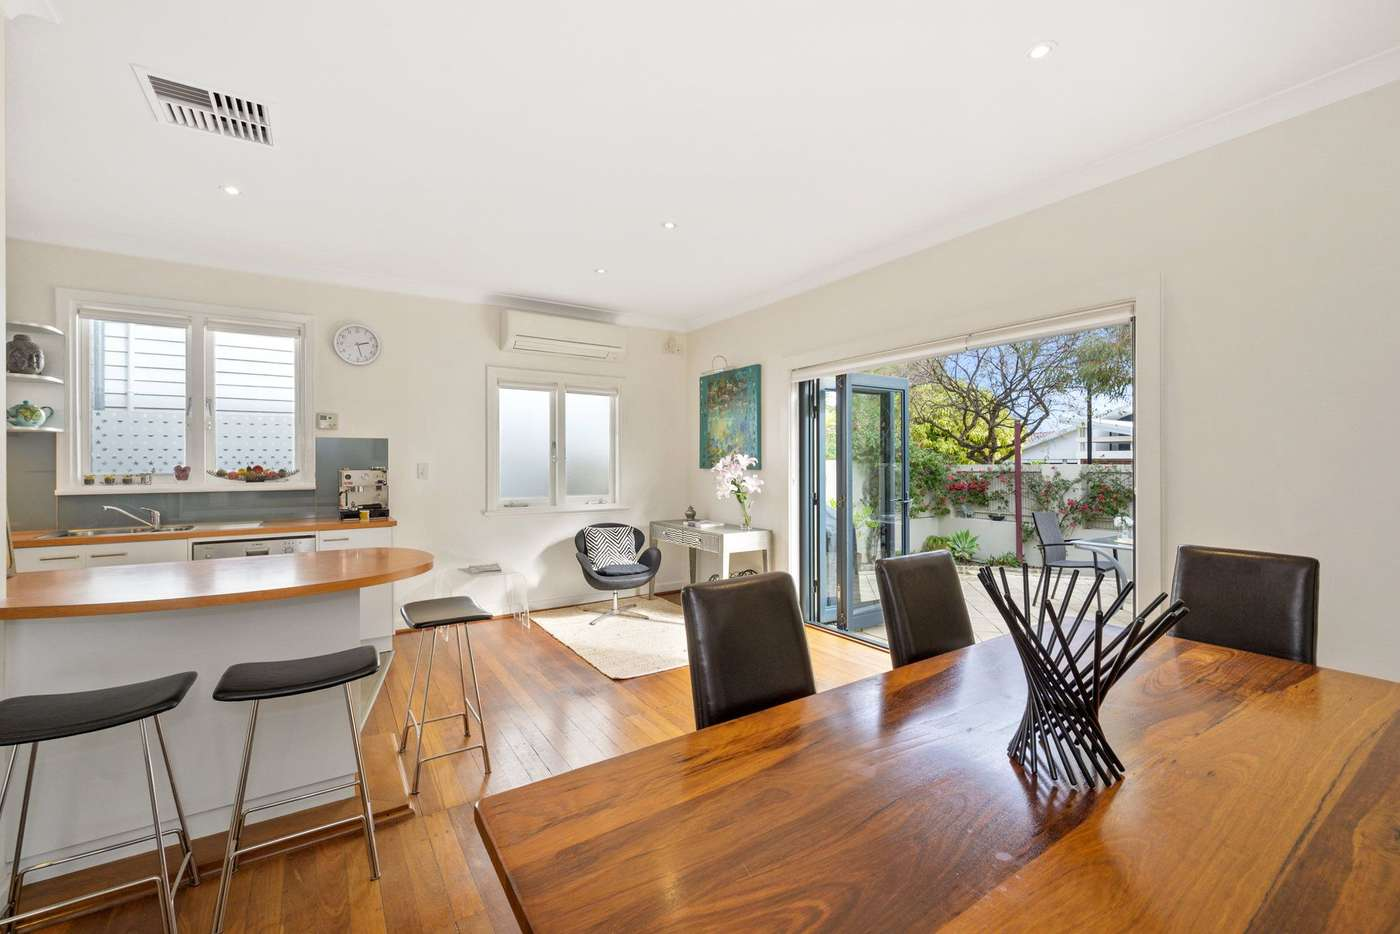 Fifth view of Homely house listing, 4 Hilda Street, Shenton Park WA 6008